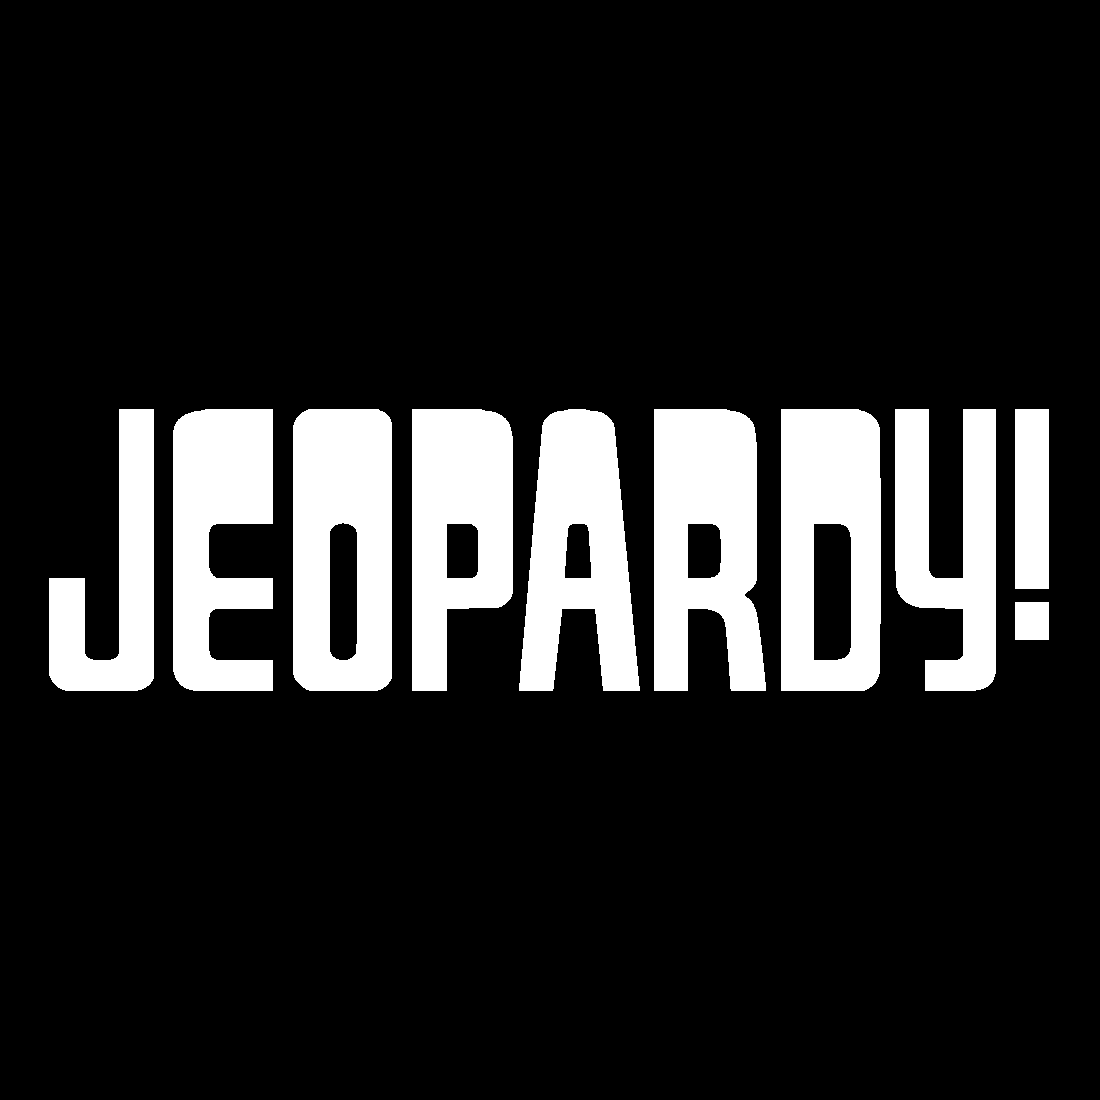 filejeopardy logo in black background in white letterspng